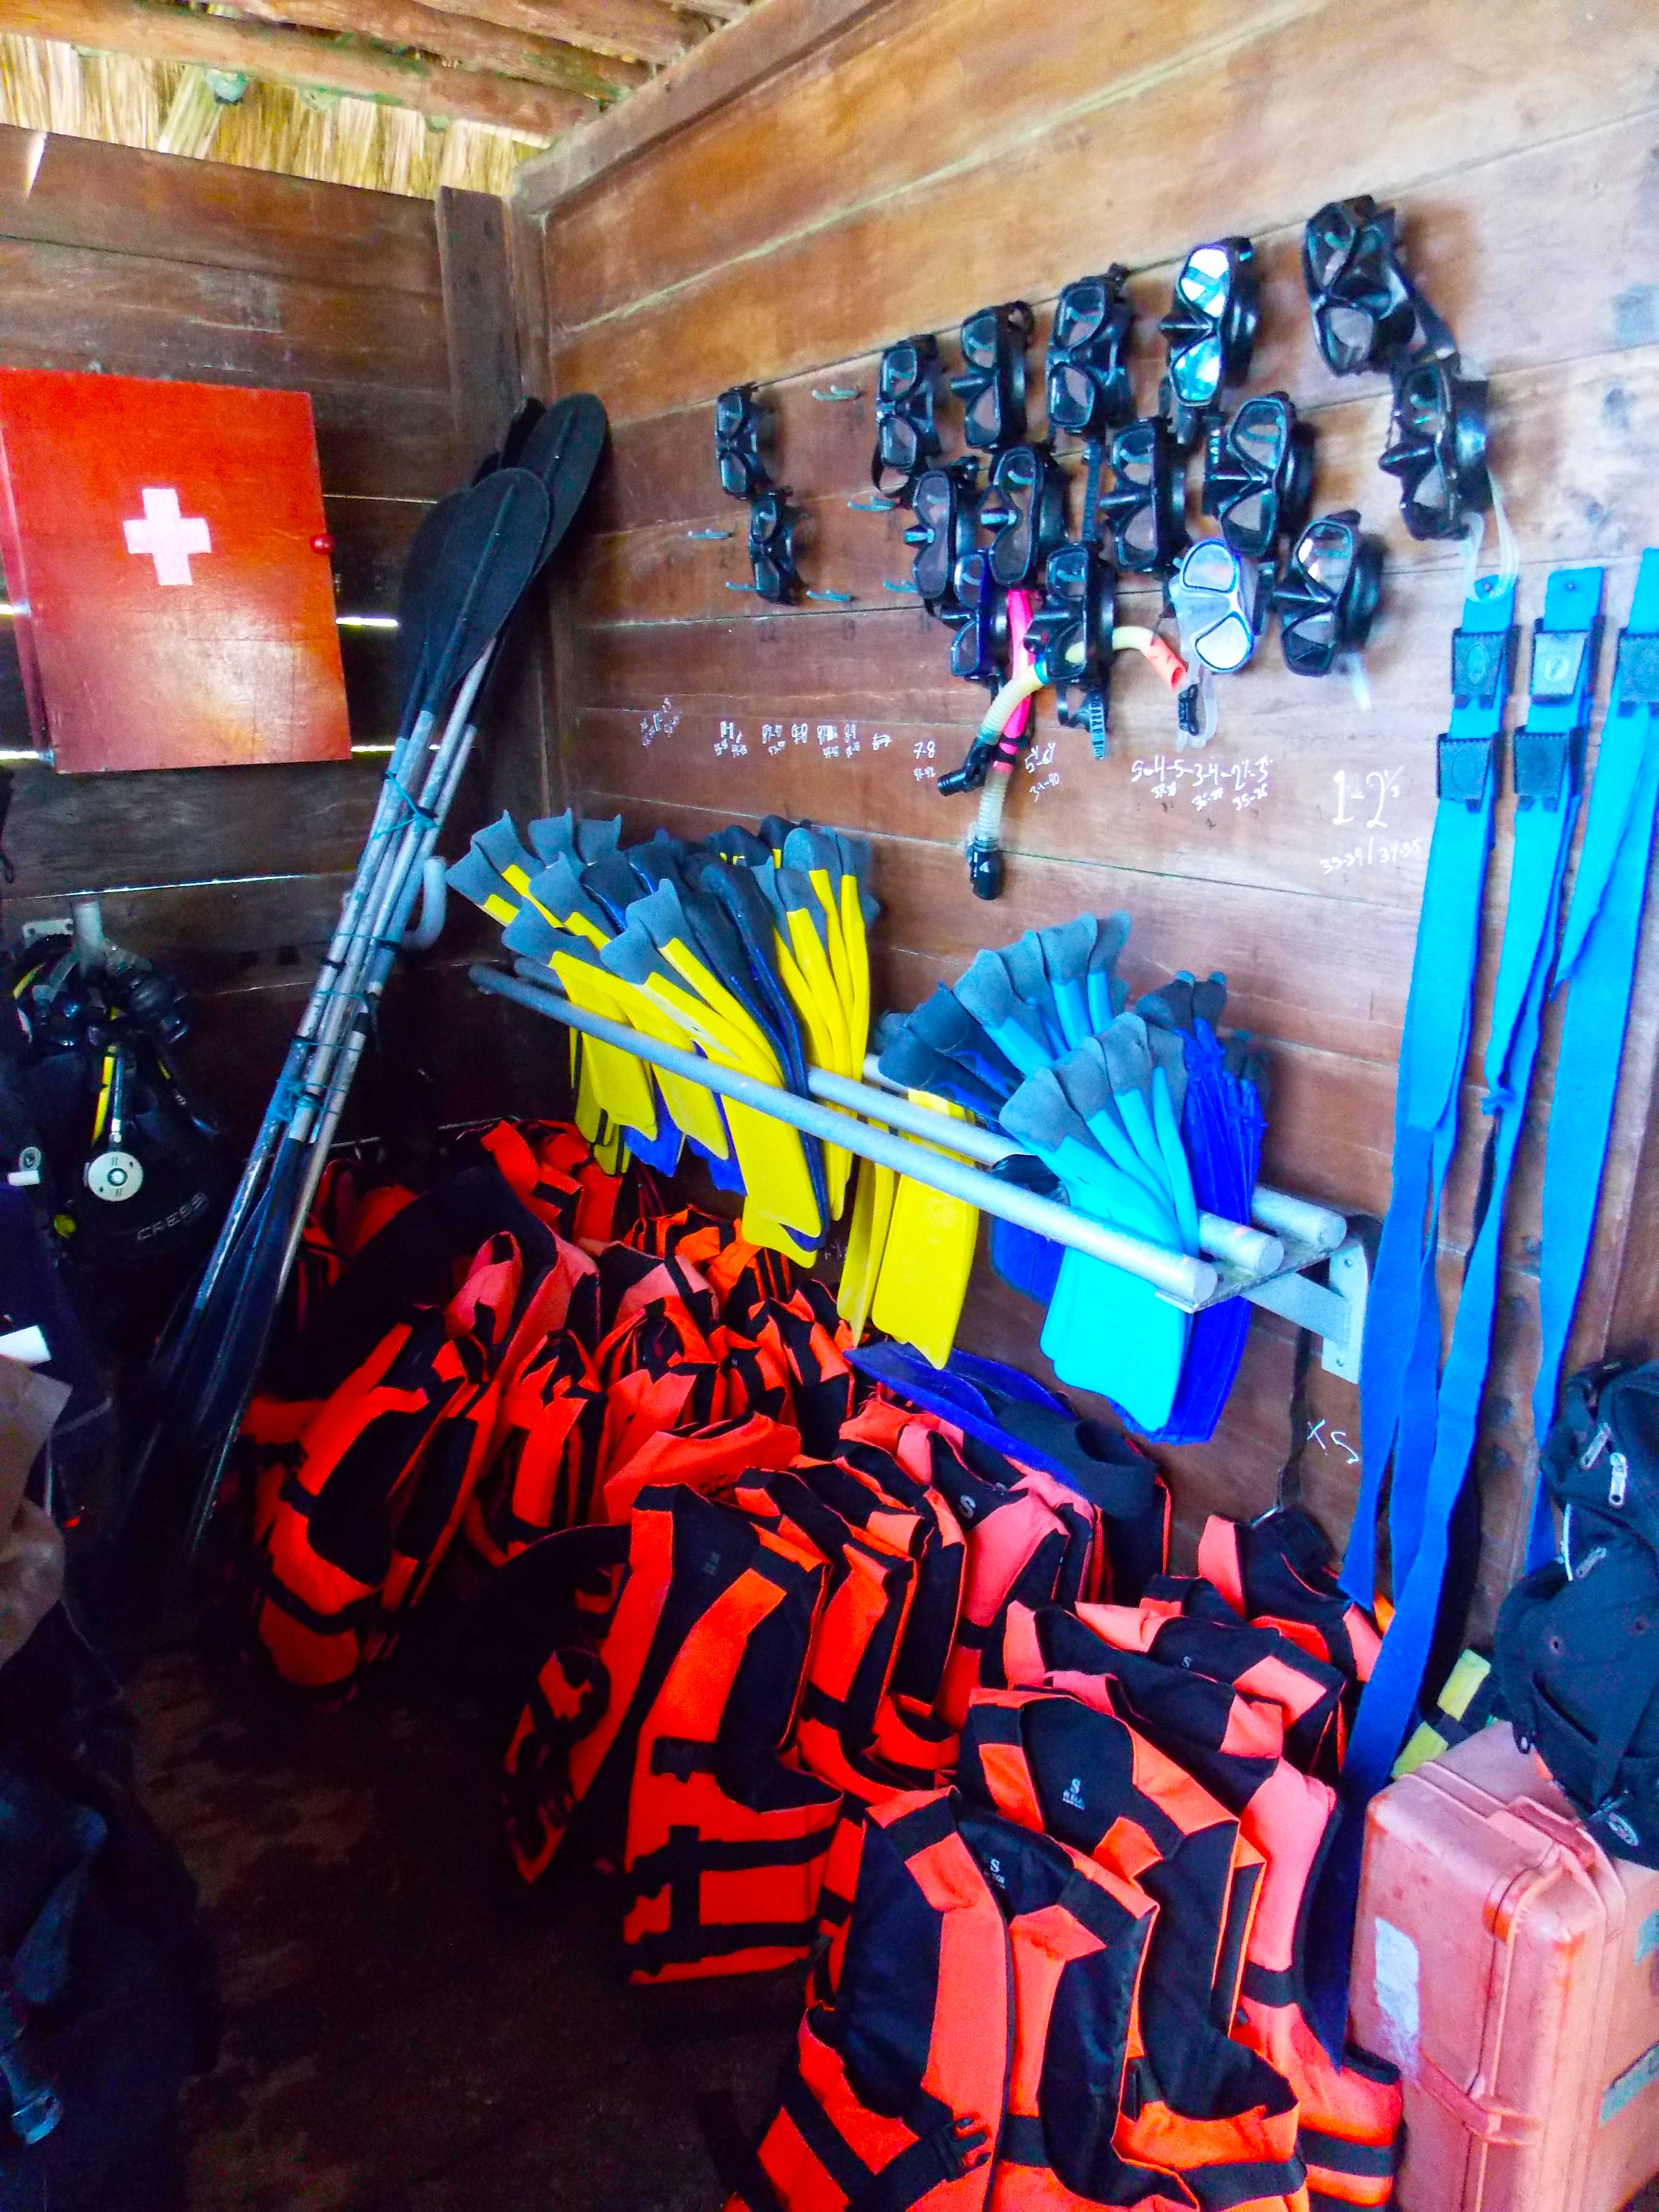 Everything you need to go diving or snorkeling!